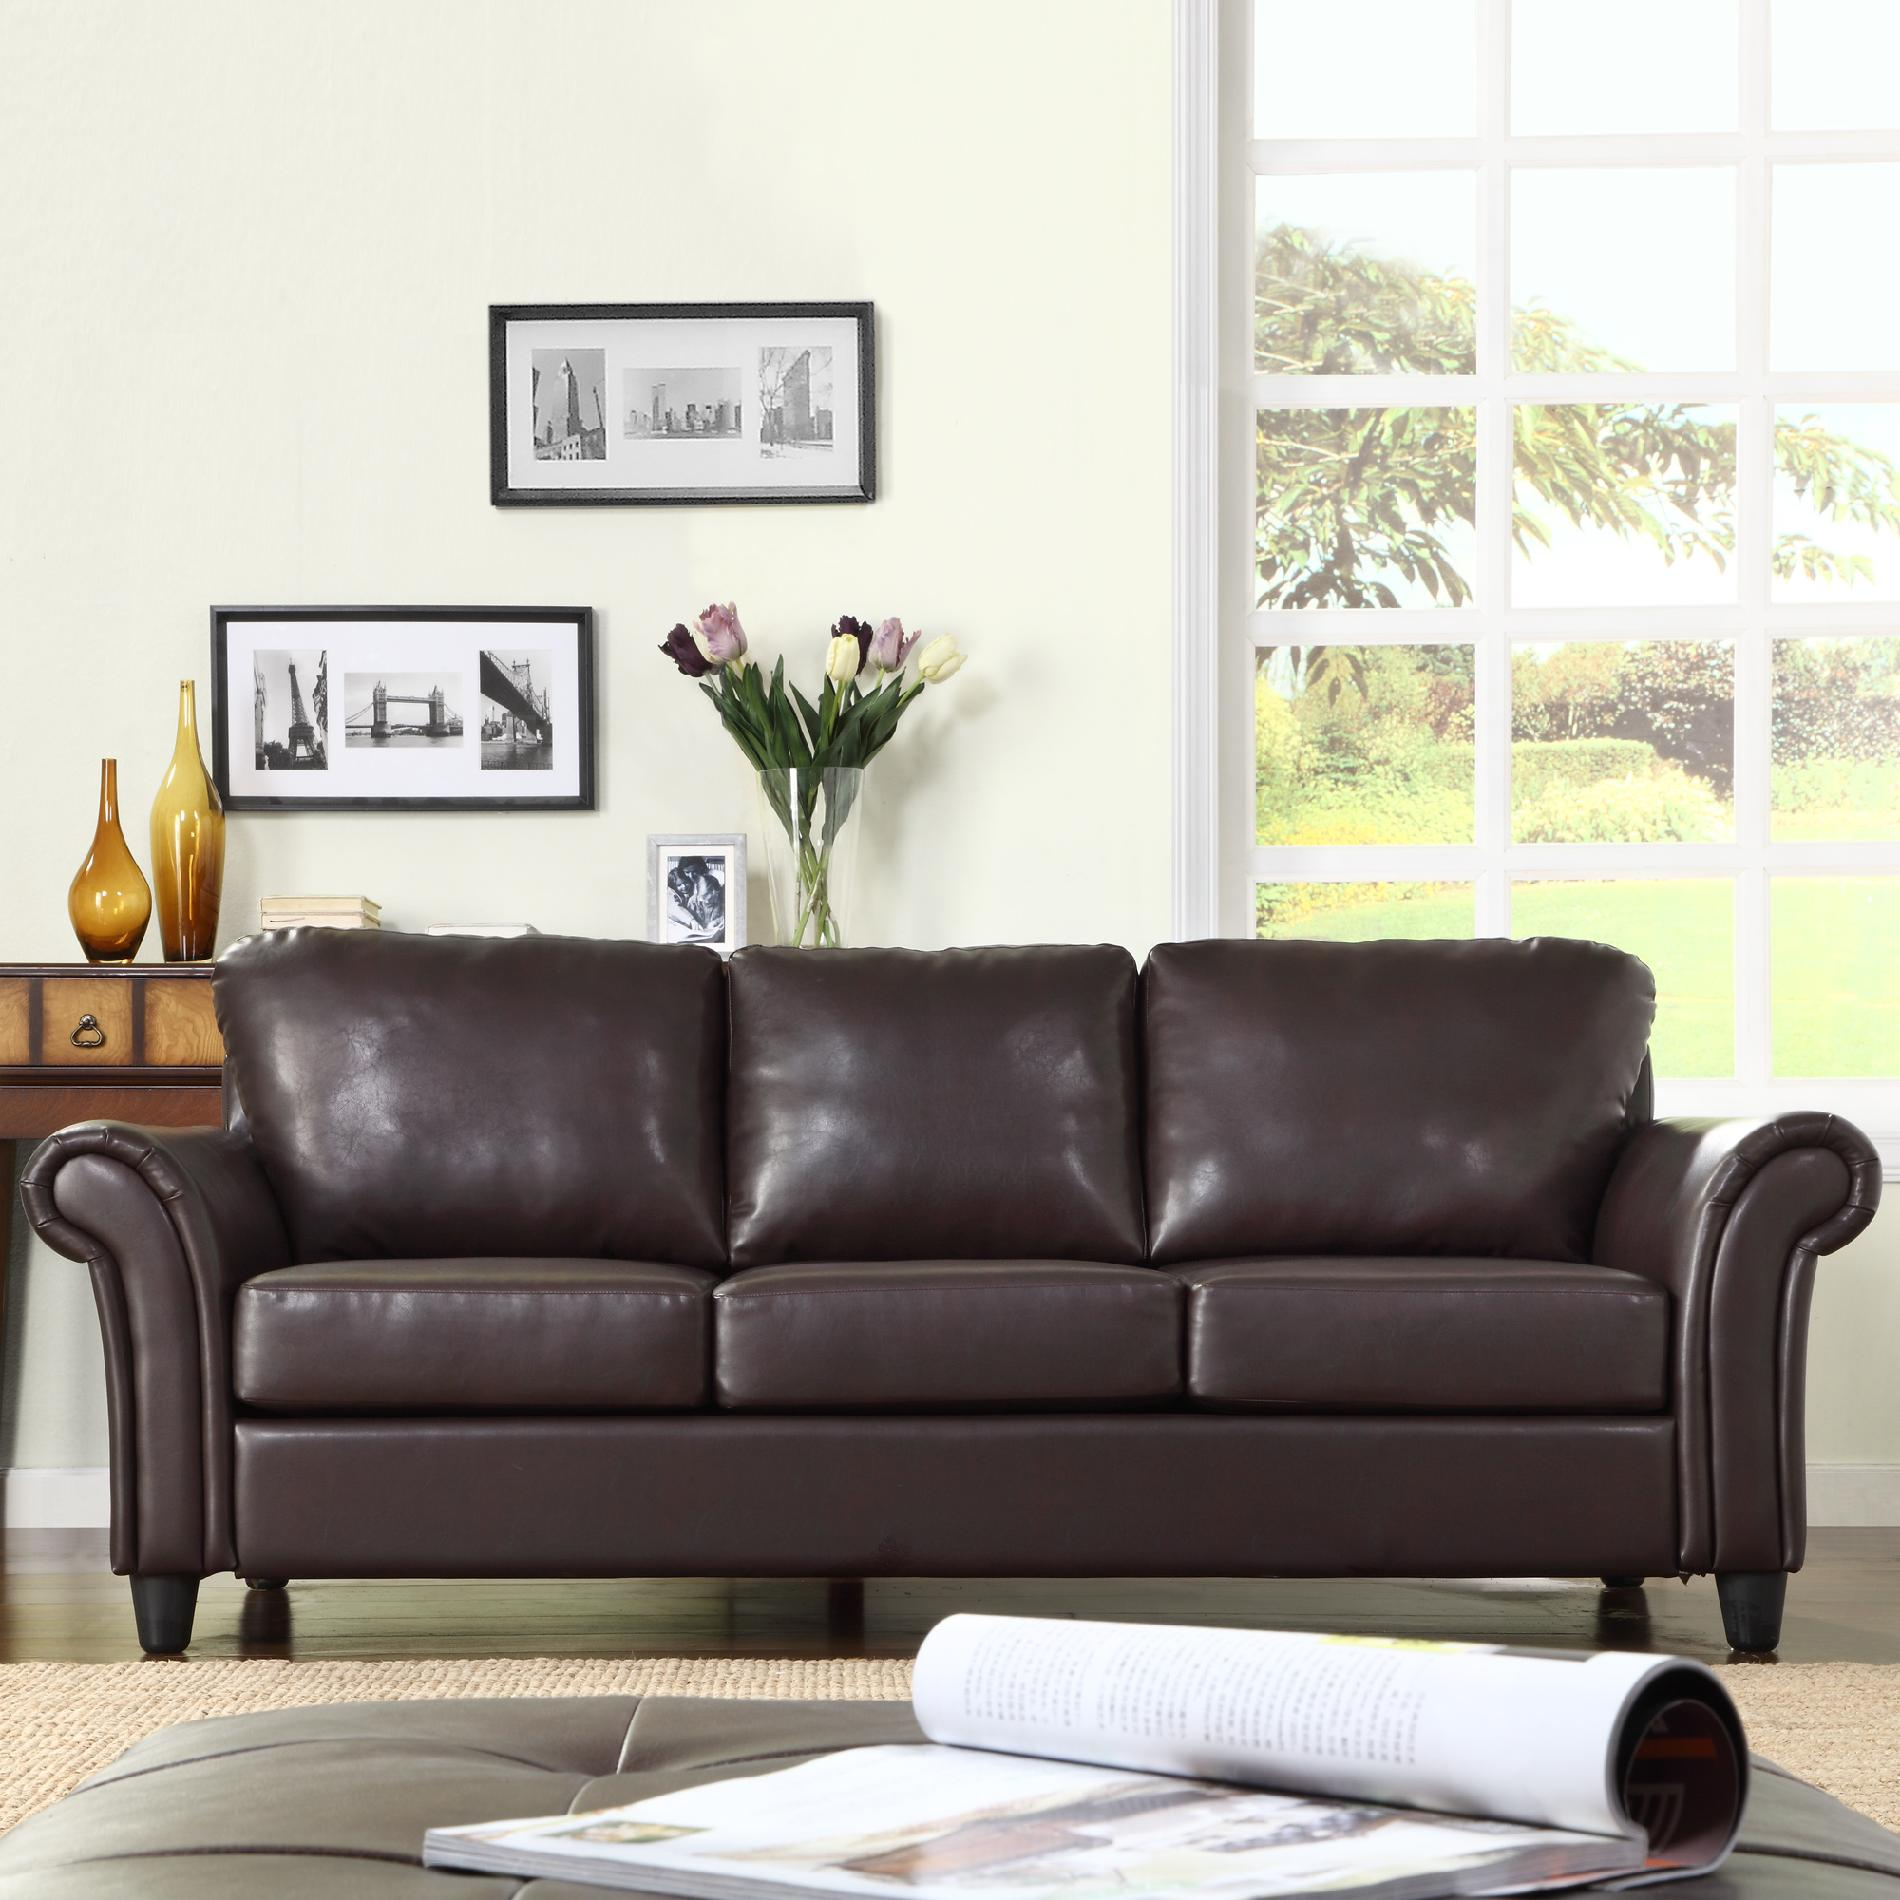 tosh furniture dark brown sofa set sofas etc towson md oxford creek contemporary in faux leather